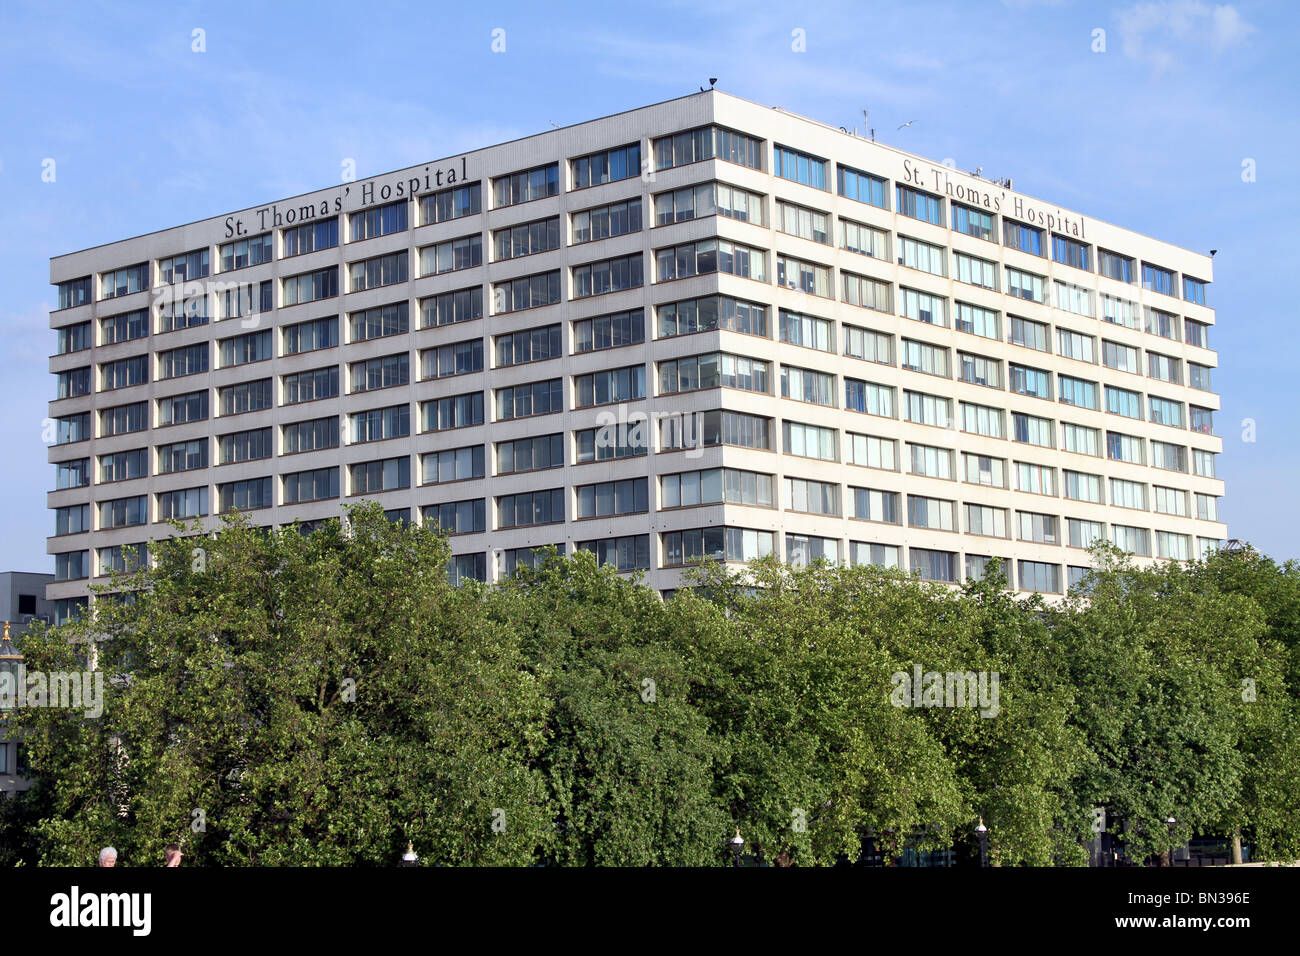 Saint Thomas' Hospital, London, England - Stock Image